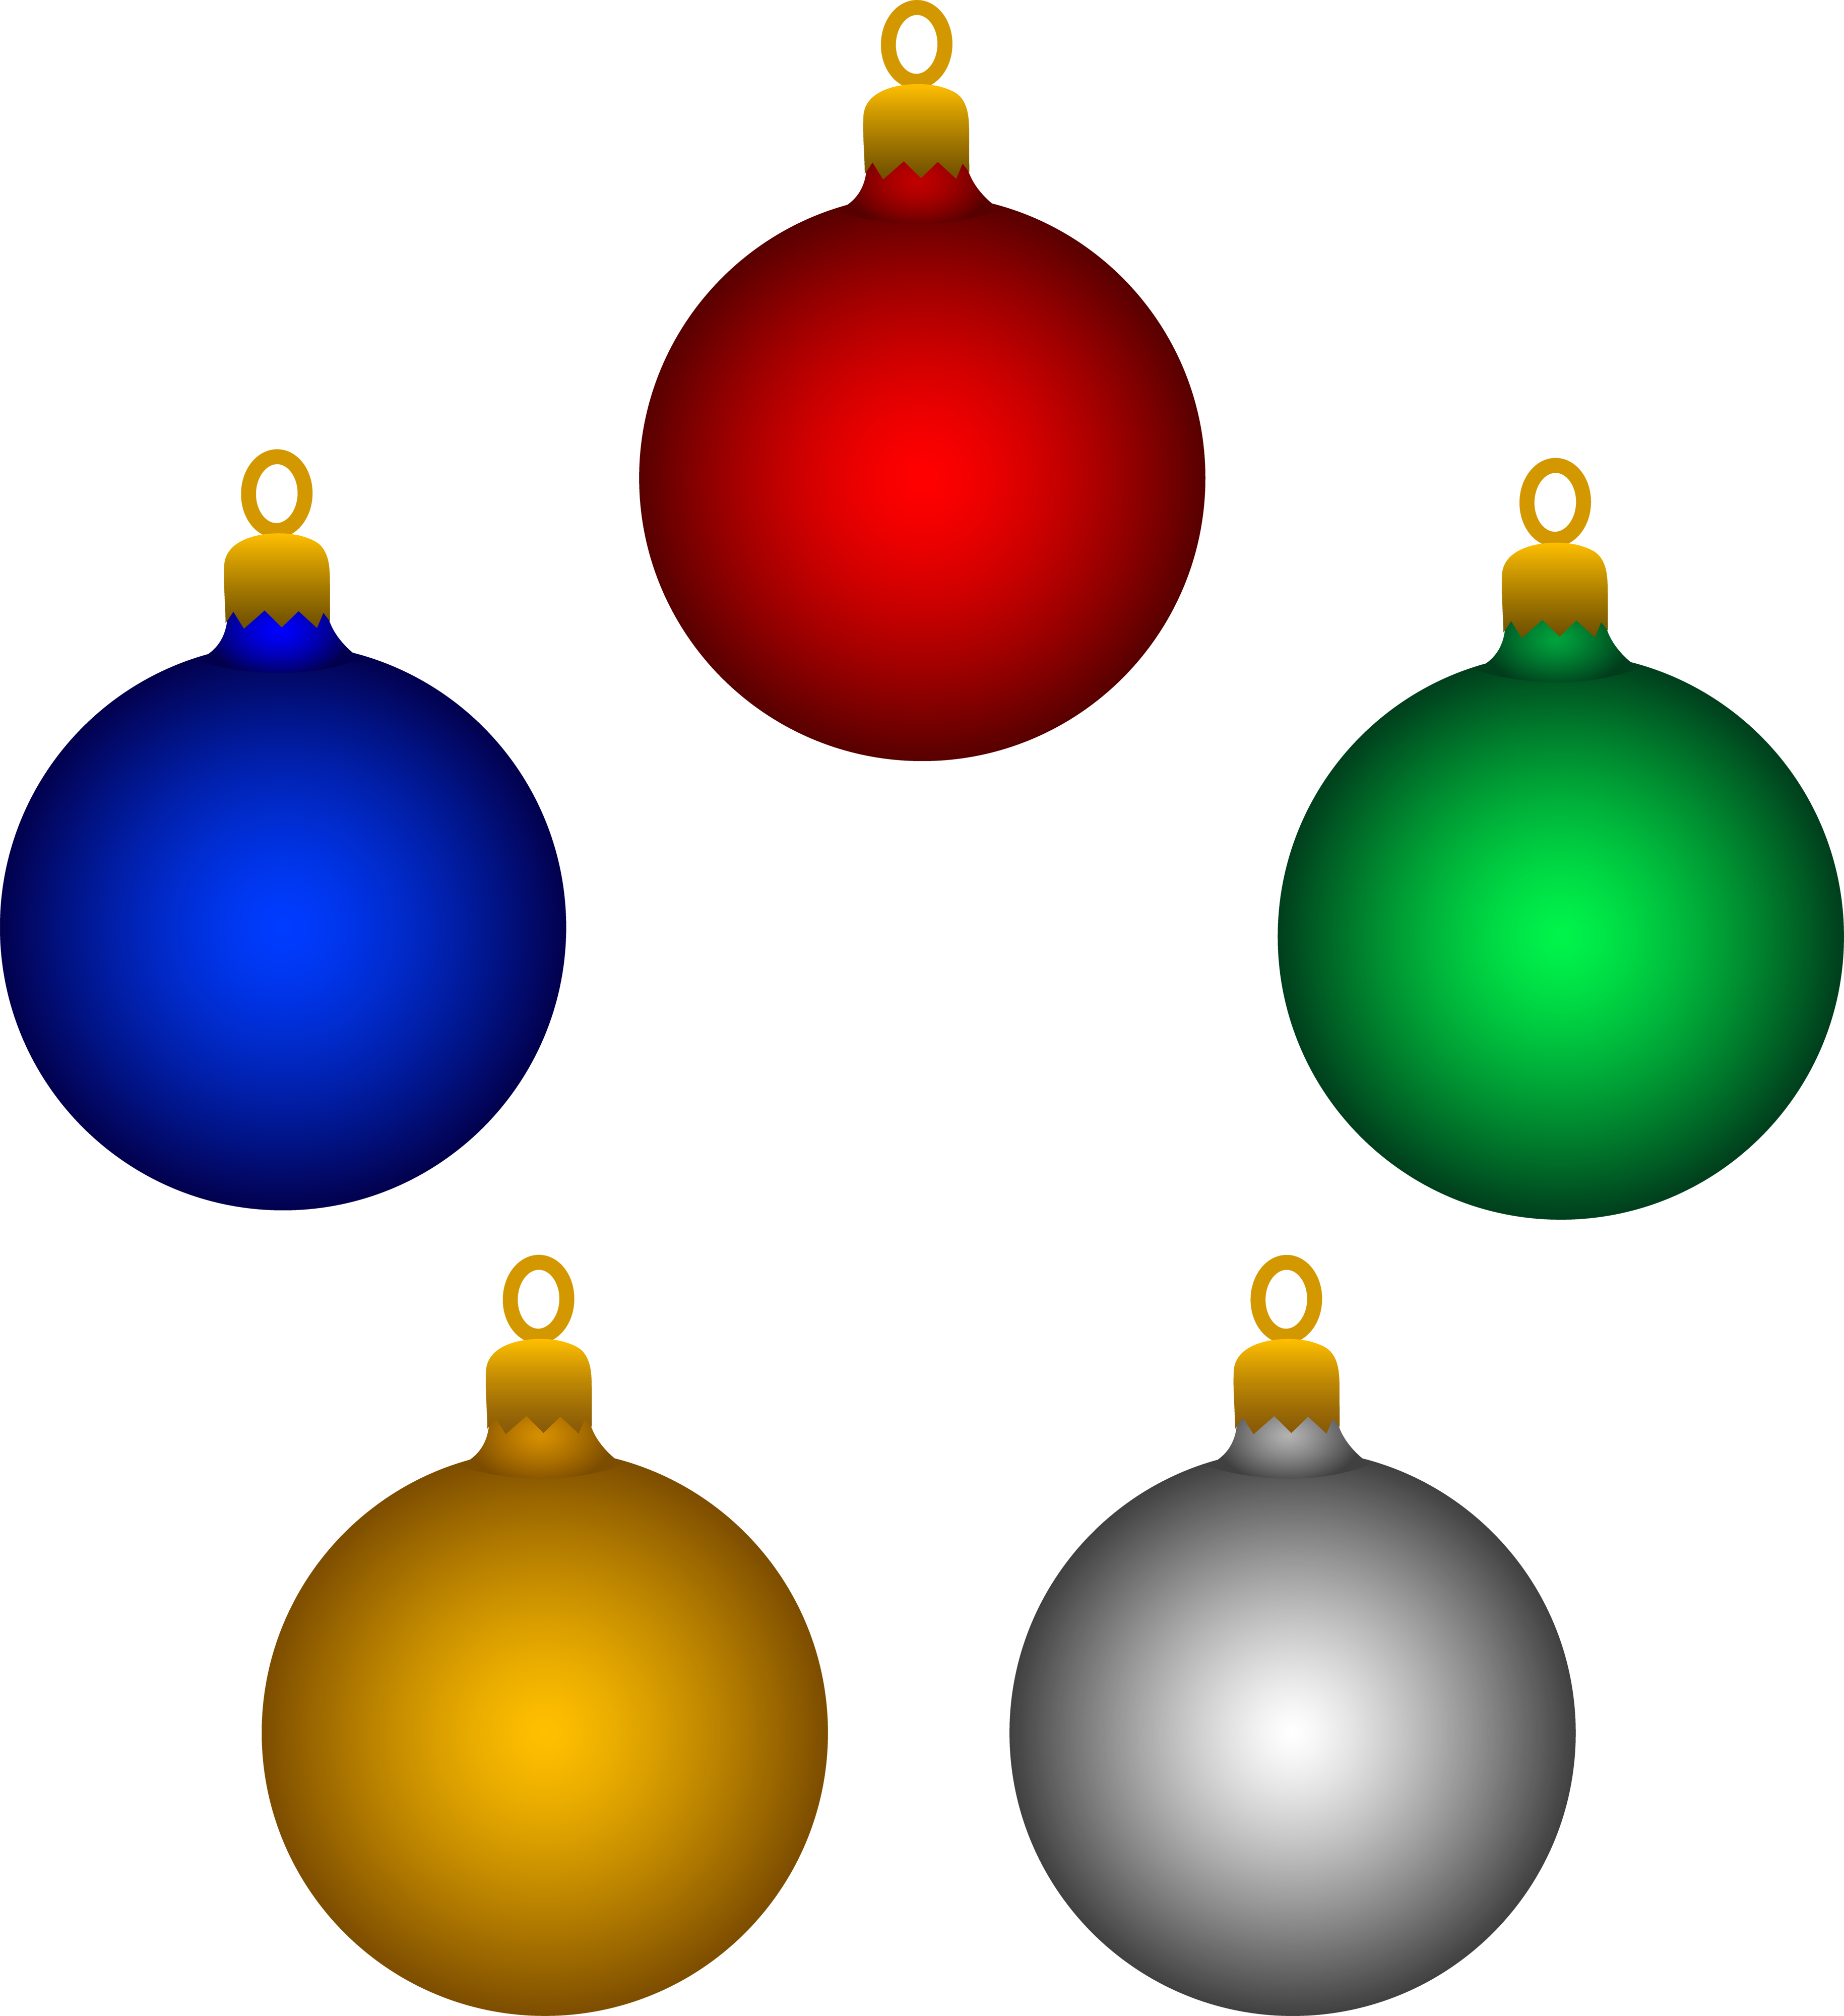 Ornaments . Ornament clipart christmas tree ornament picture freeuse download